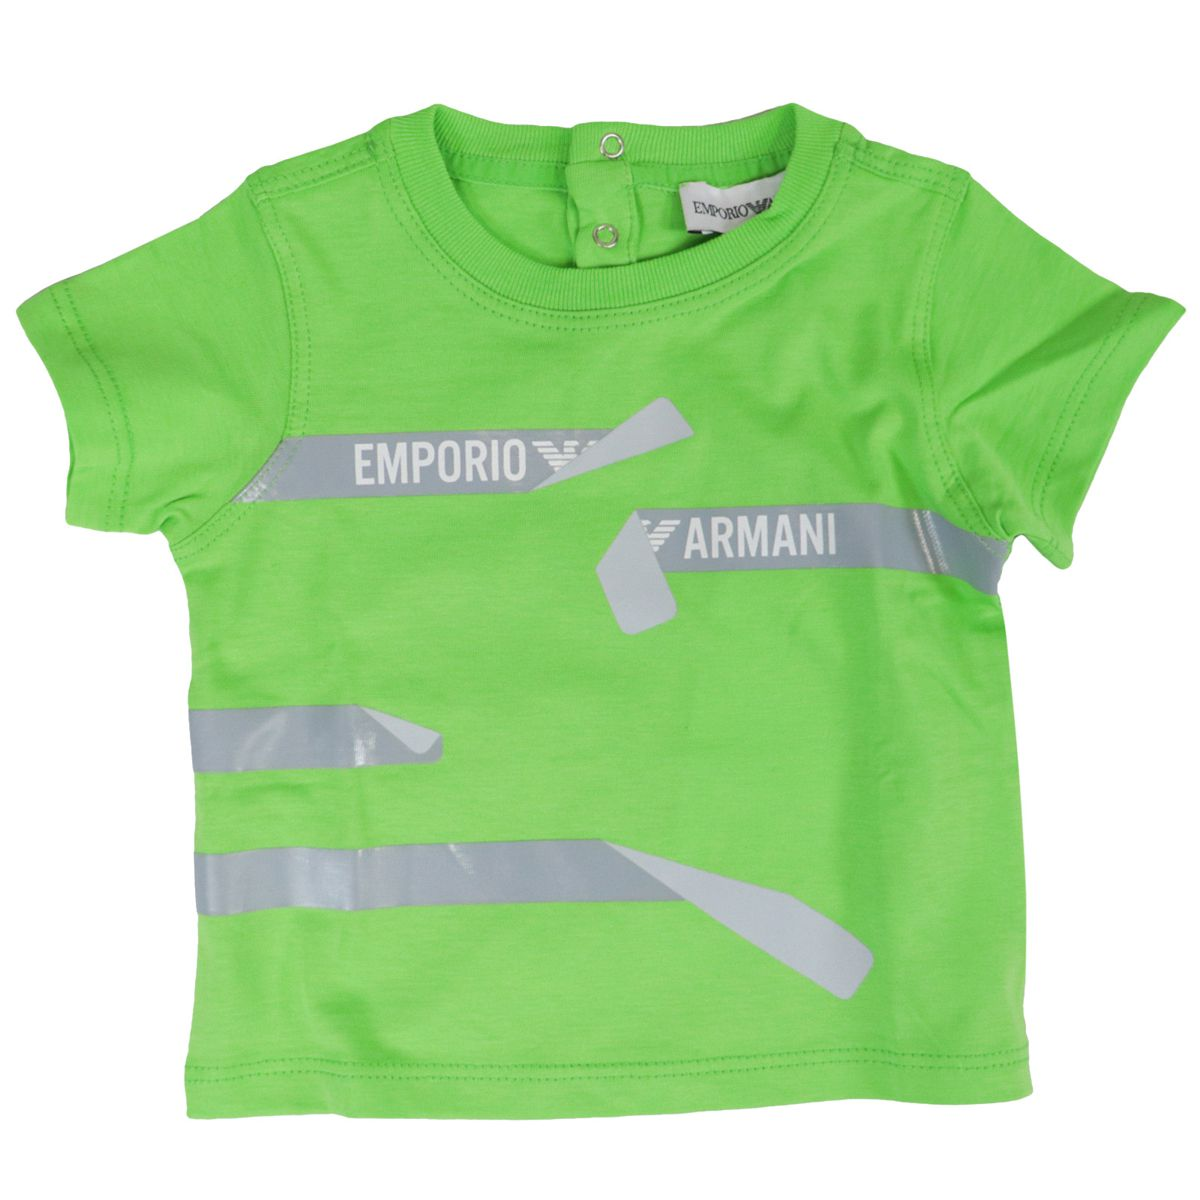 Set of printed cotton t-shirts Green black white Emporio Armani